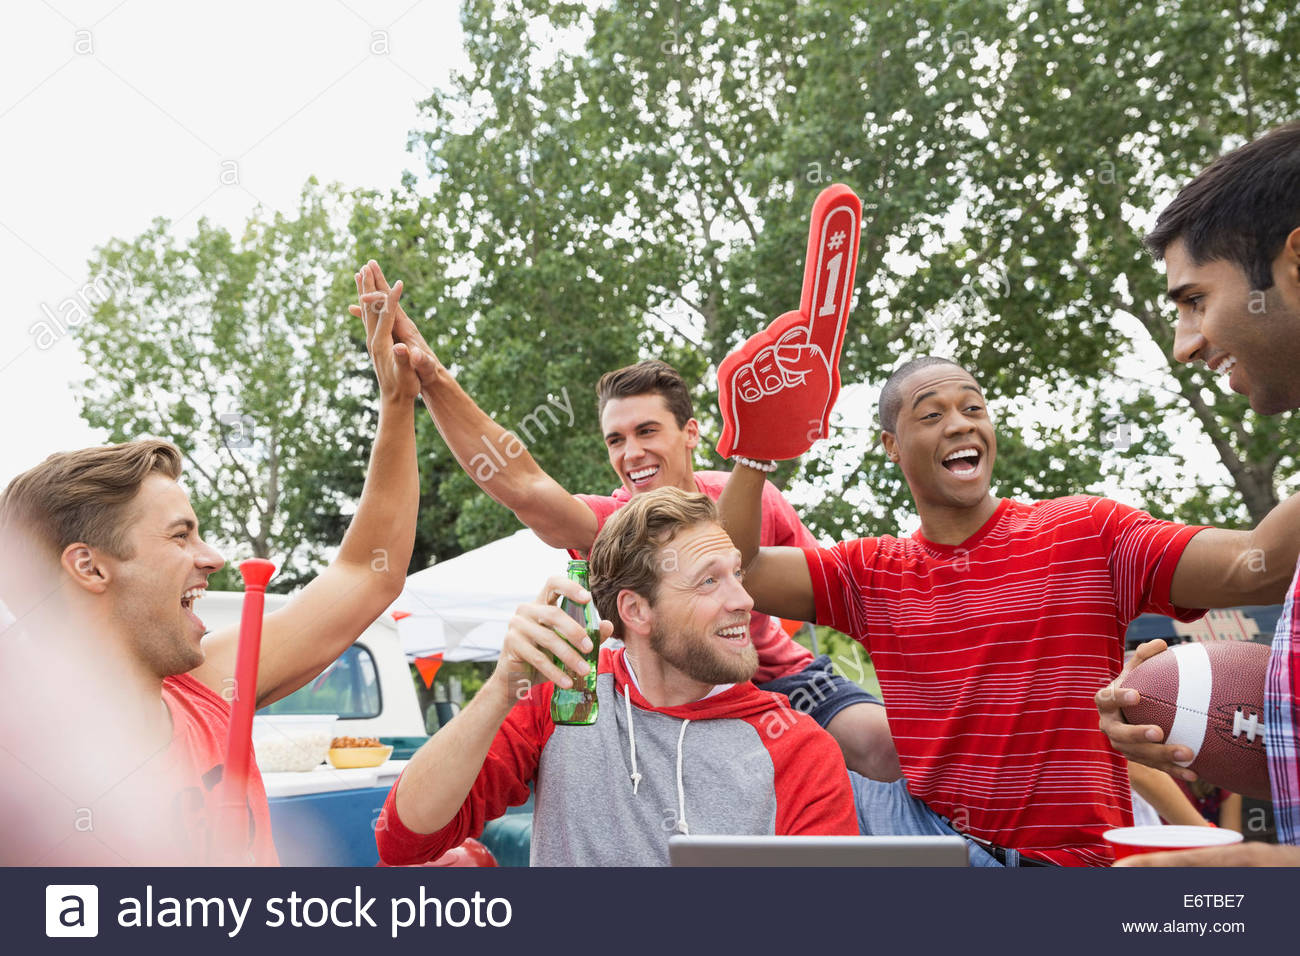 Men cheering at tailgate barbecue in field - Stock Image